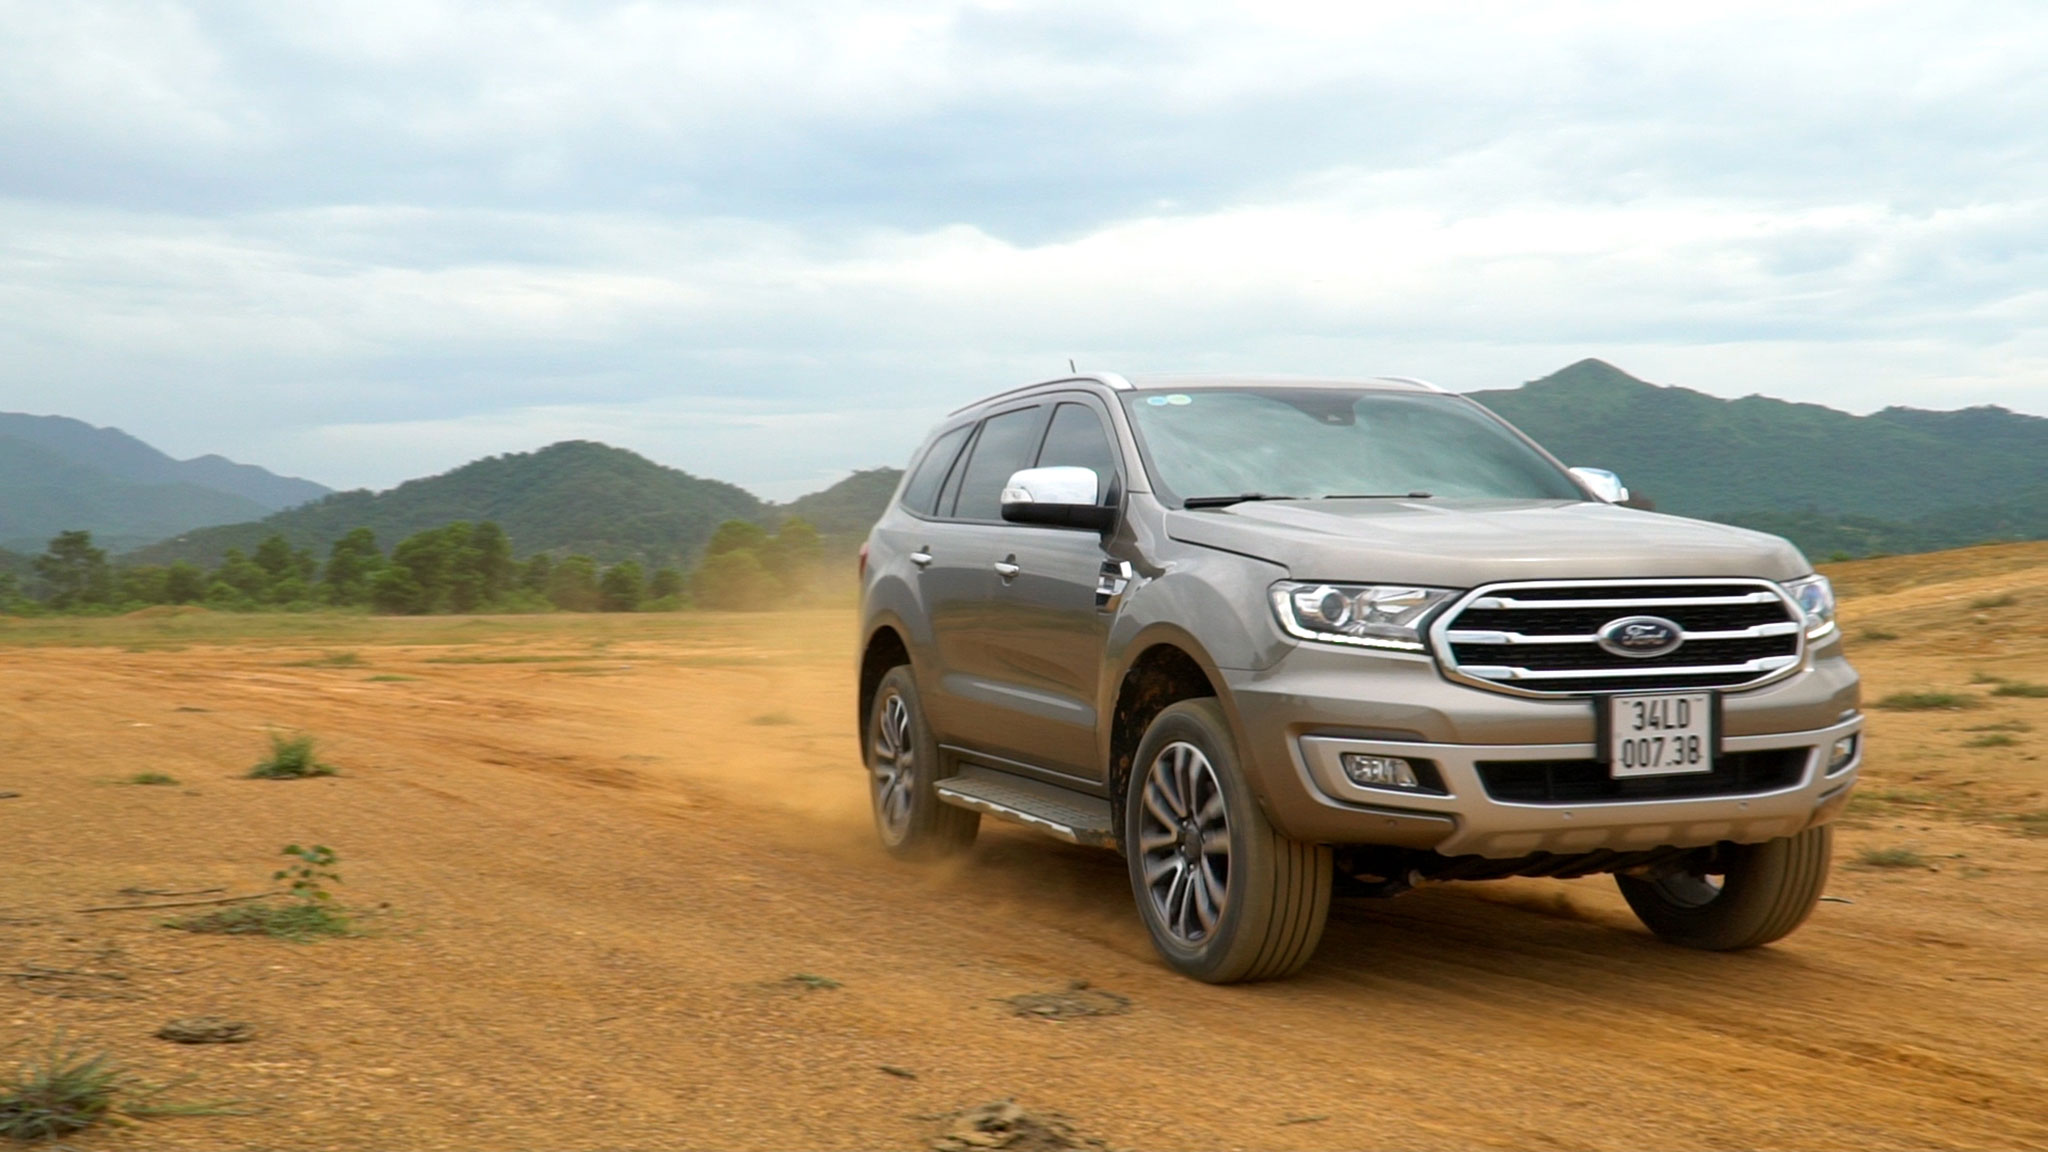 ford-everest-bi-turbo-autodaily-04-1.jpg